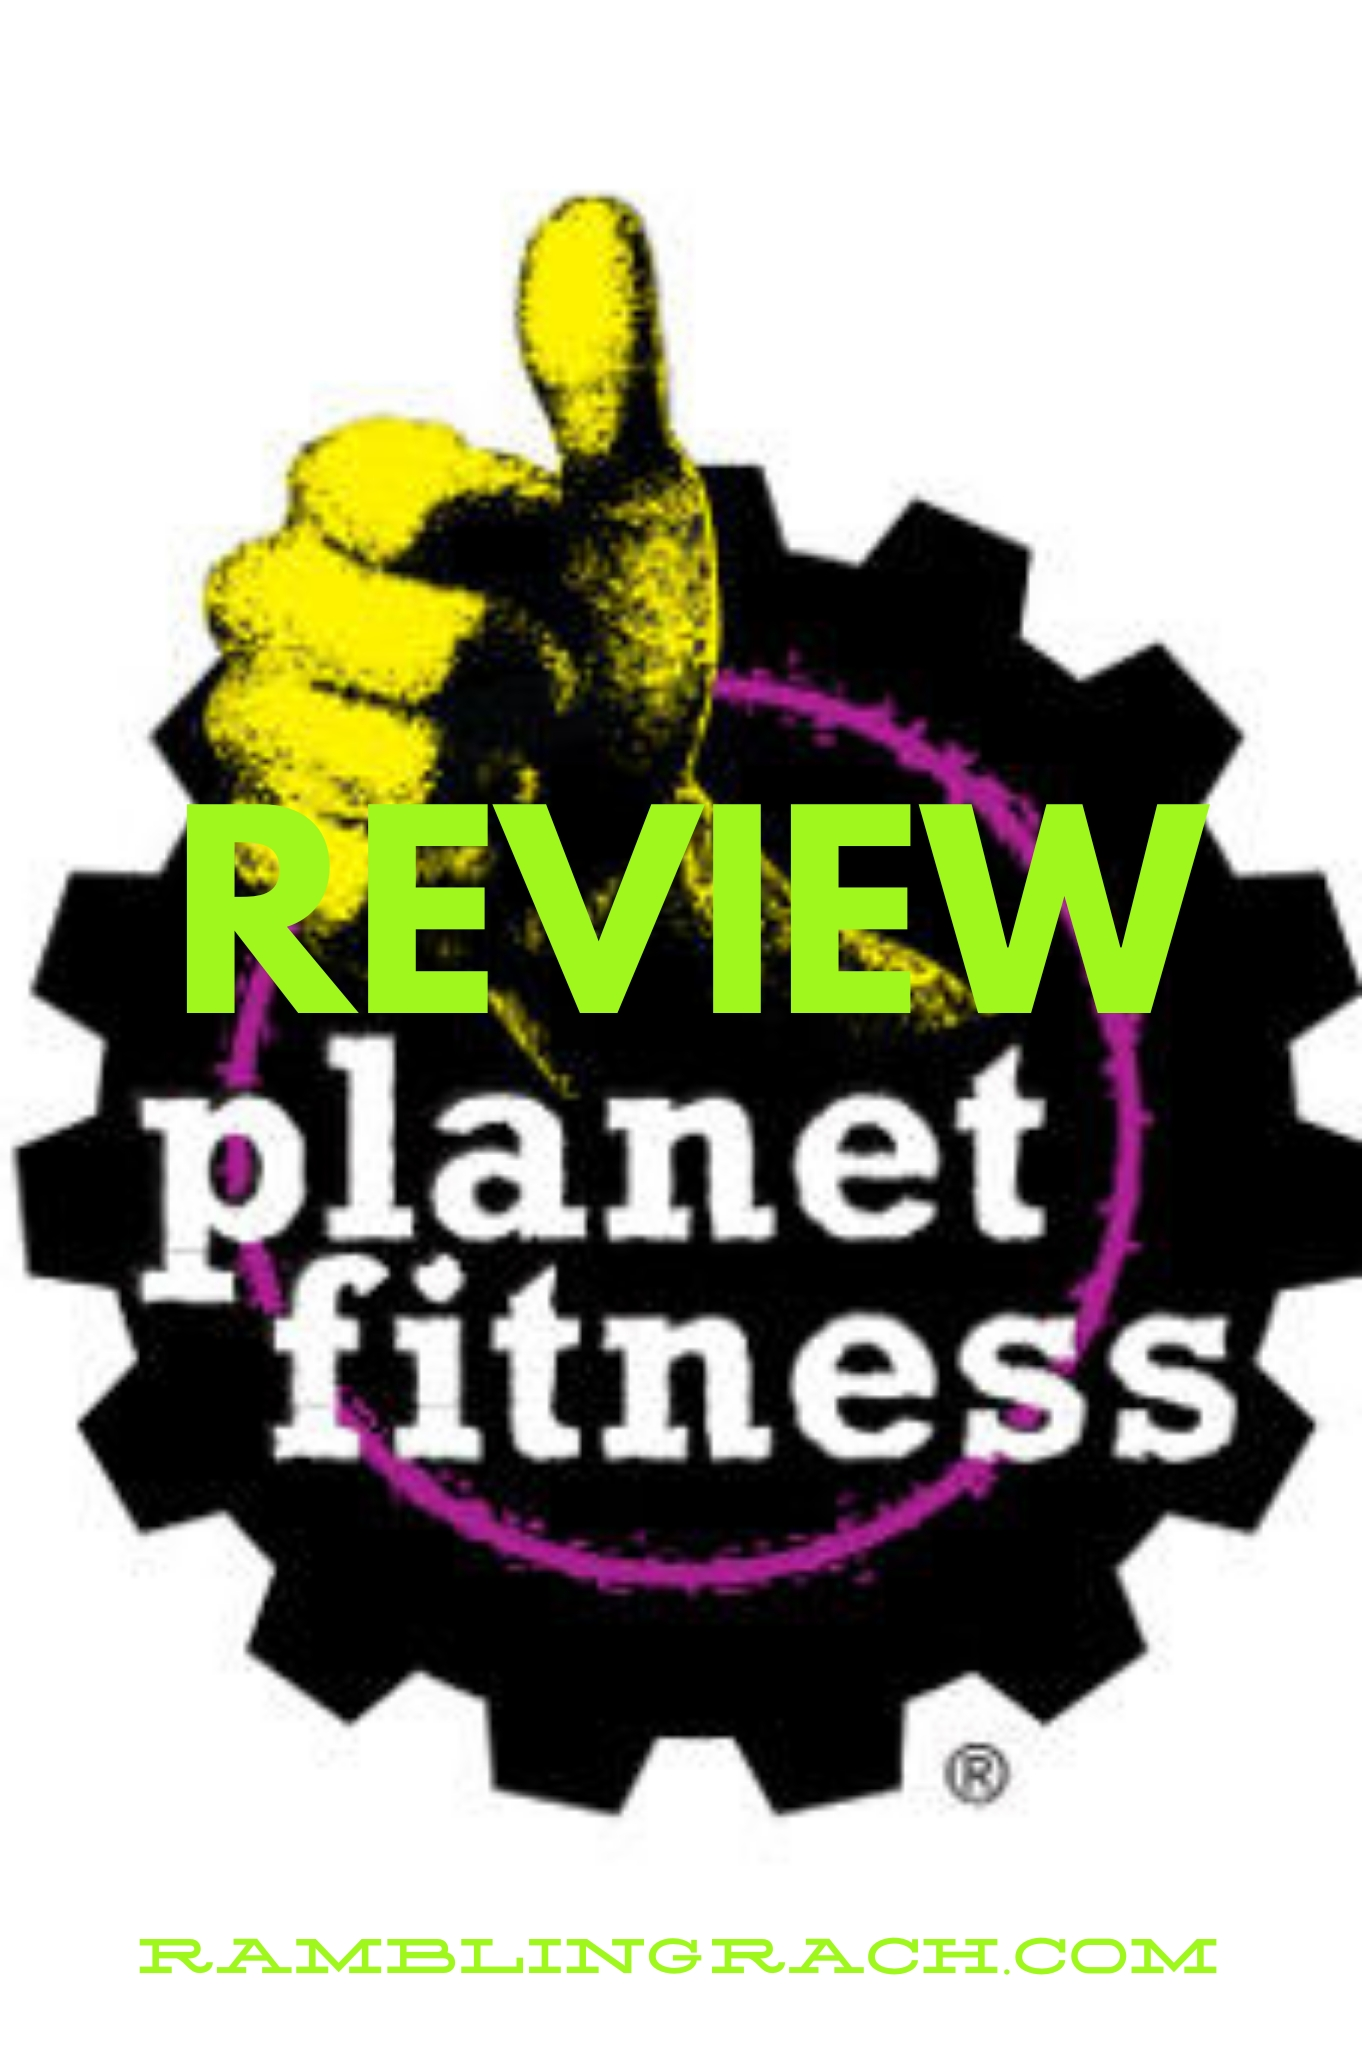 Closest Planet Fitness Near Me : closest, planet, fitness, Planet, Fitness, Review, 40-year-old, Overweight, Rambling